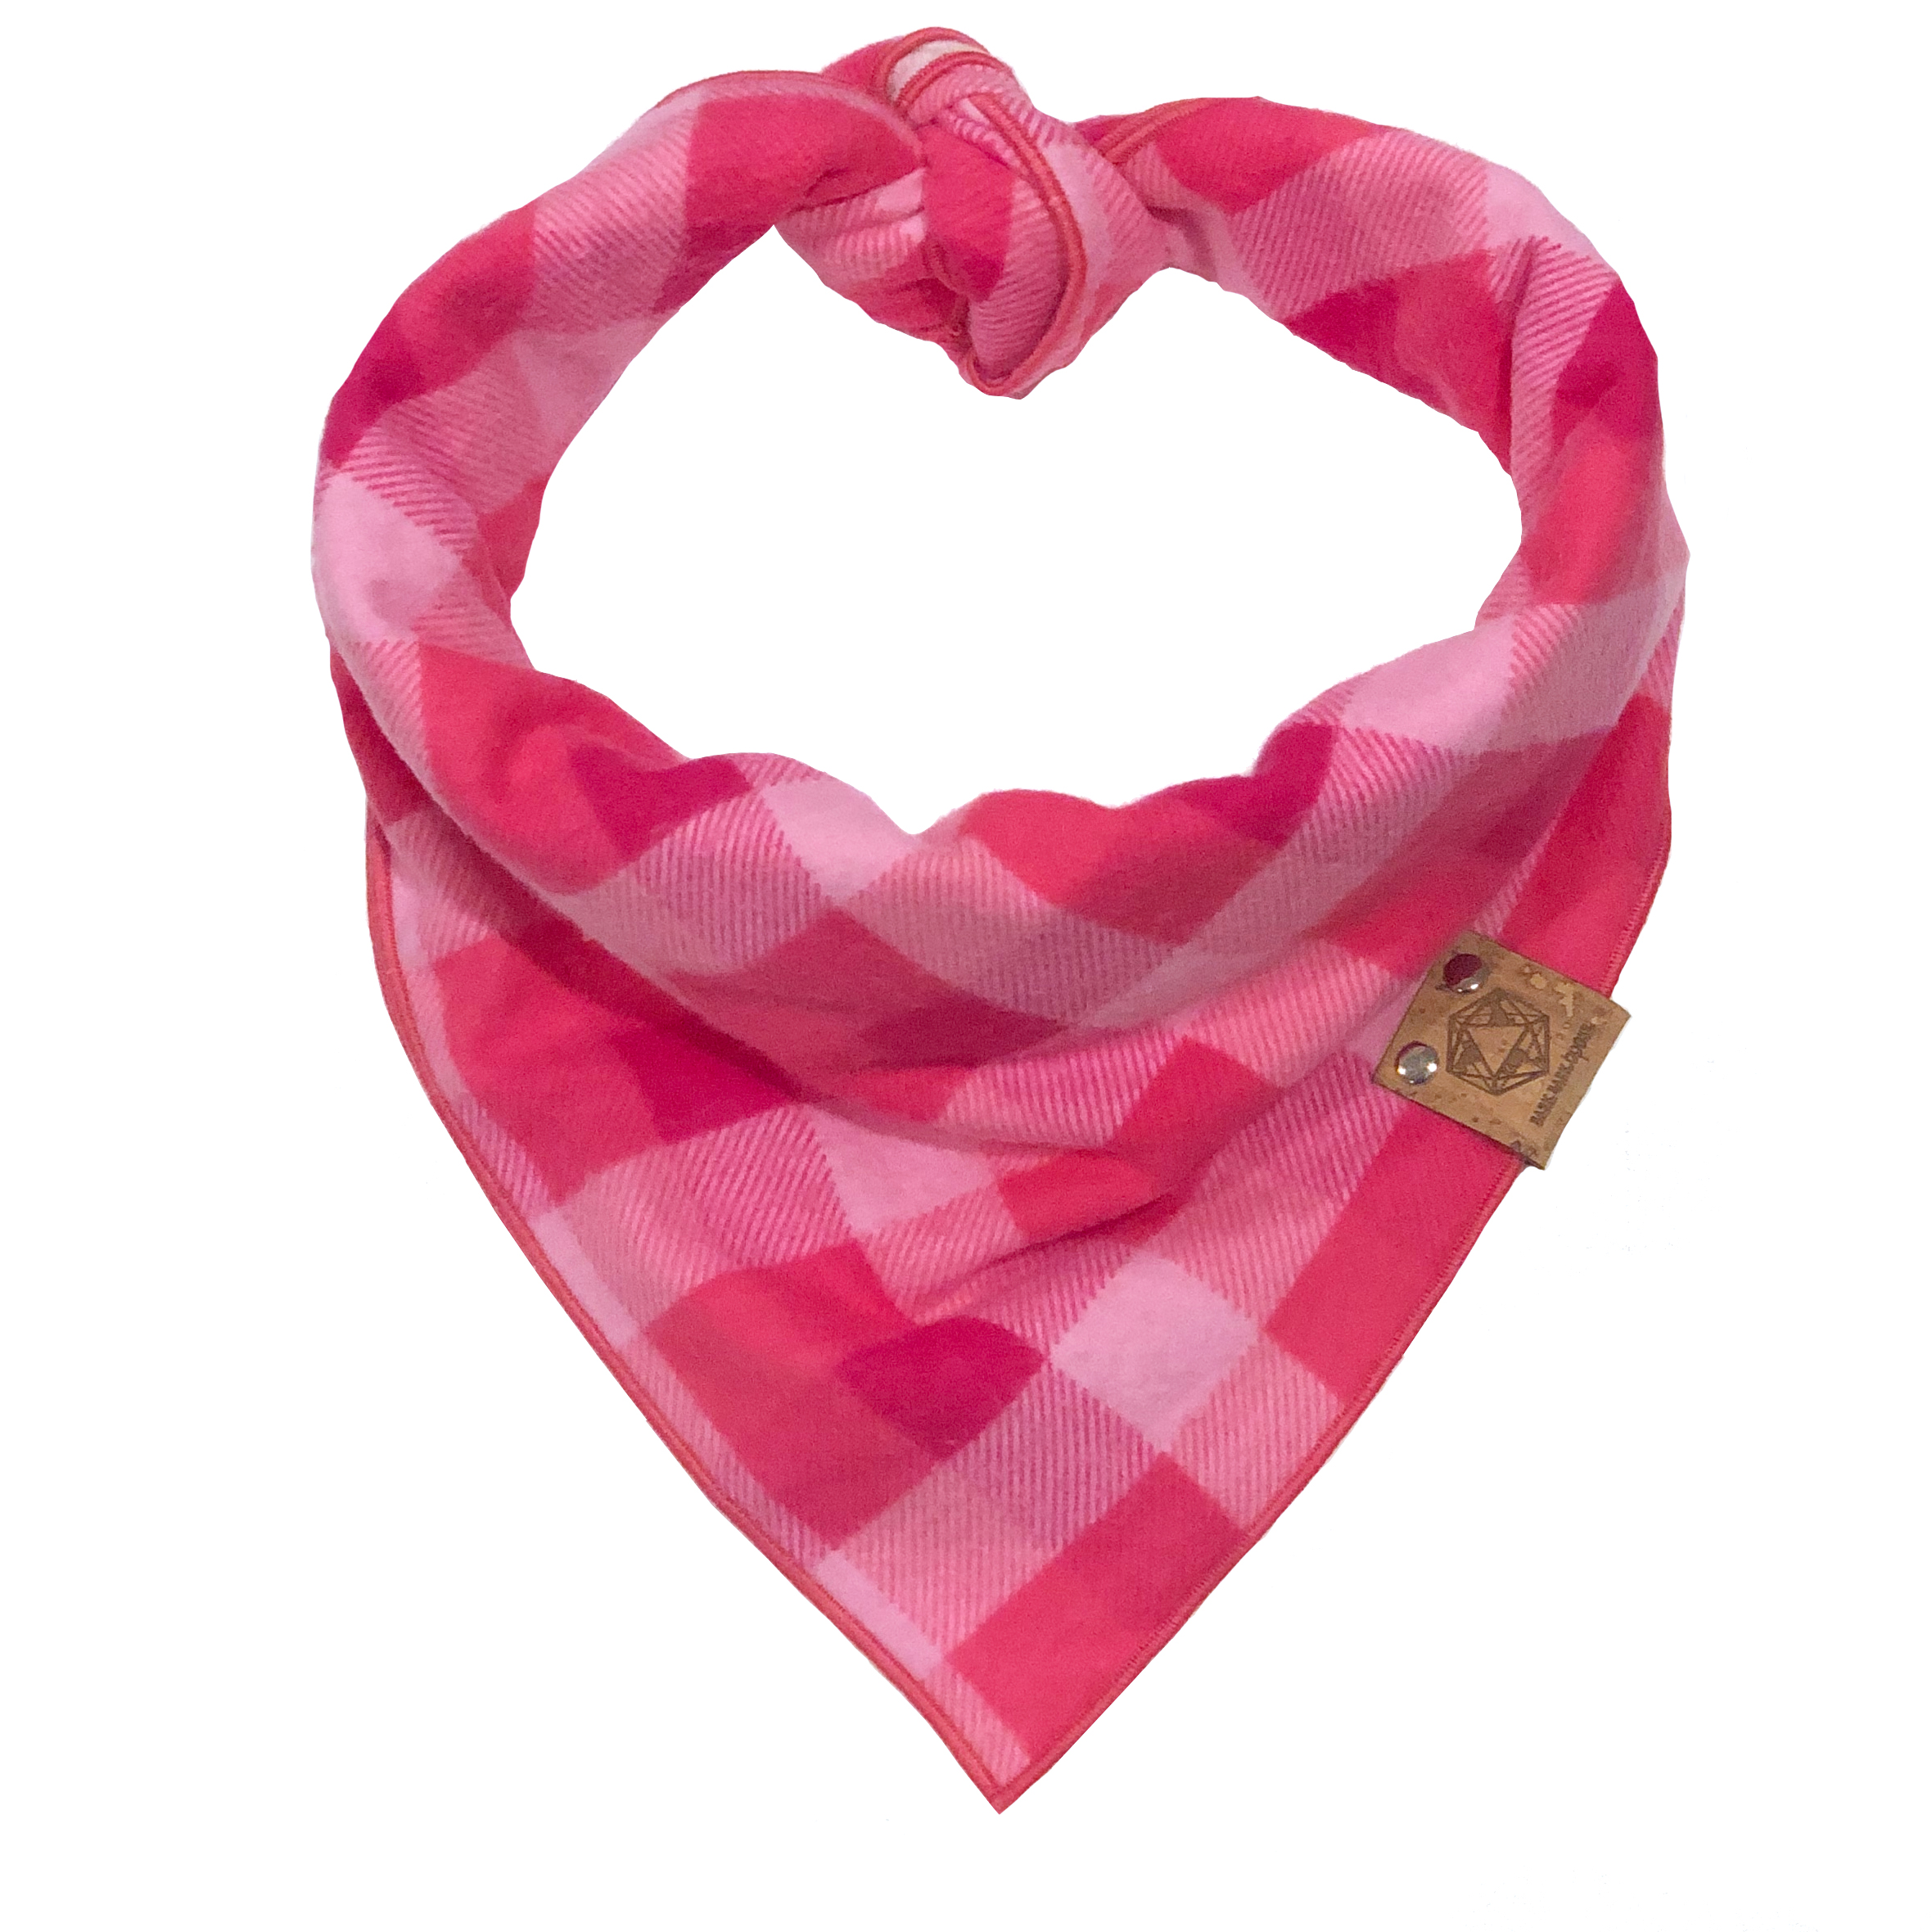 bight-pink-plaid-dog-bandana-for-valentines-day.jpg